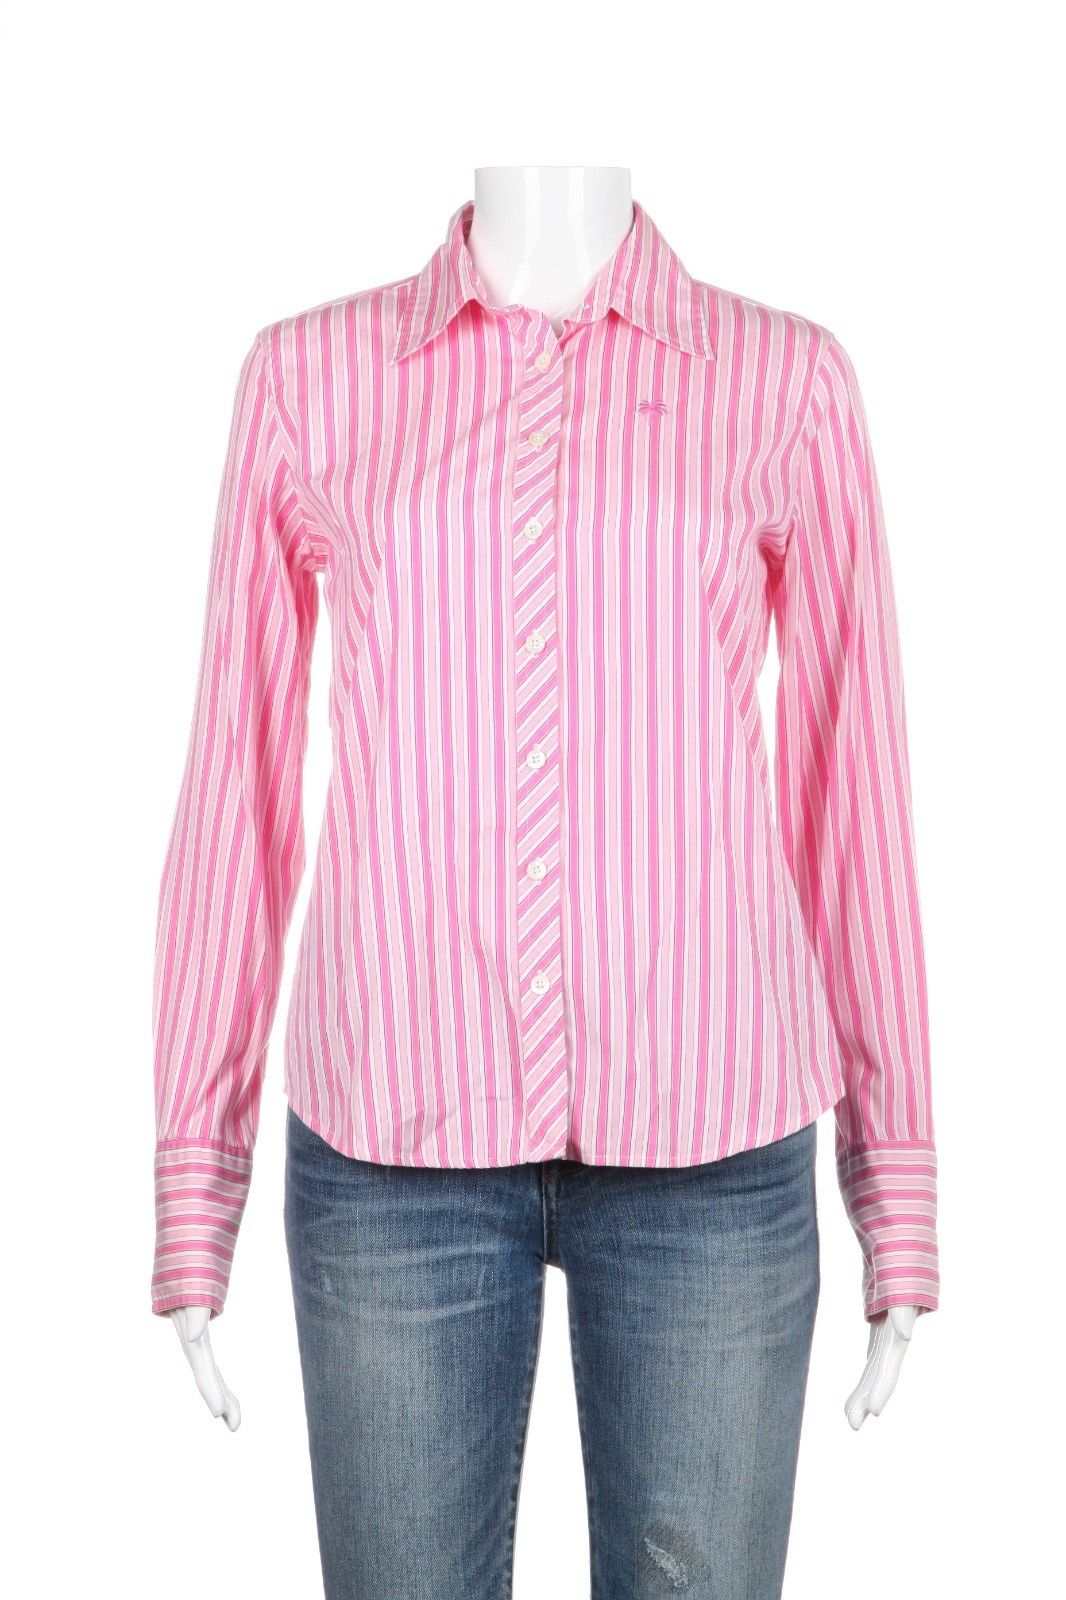 LILLY PULITZER Pink Striped Button Down Shirt Size 2